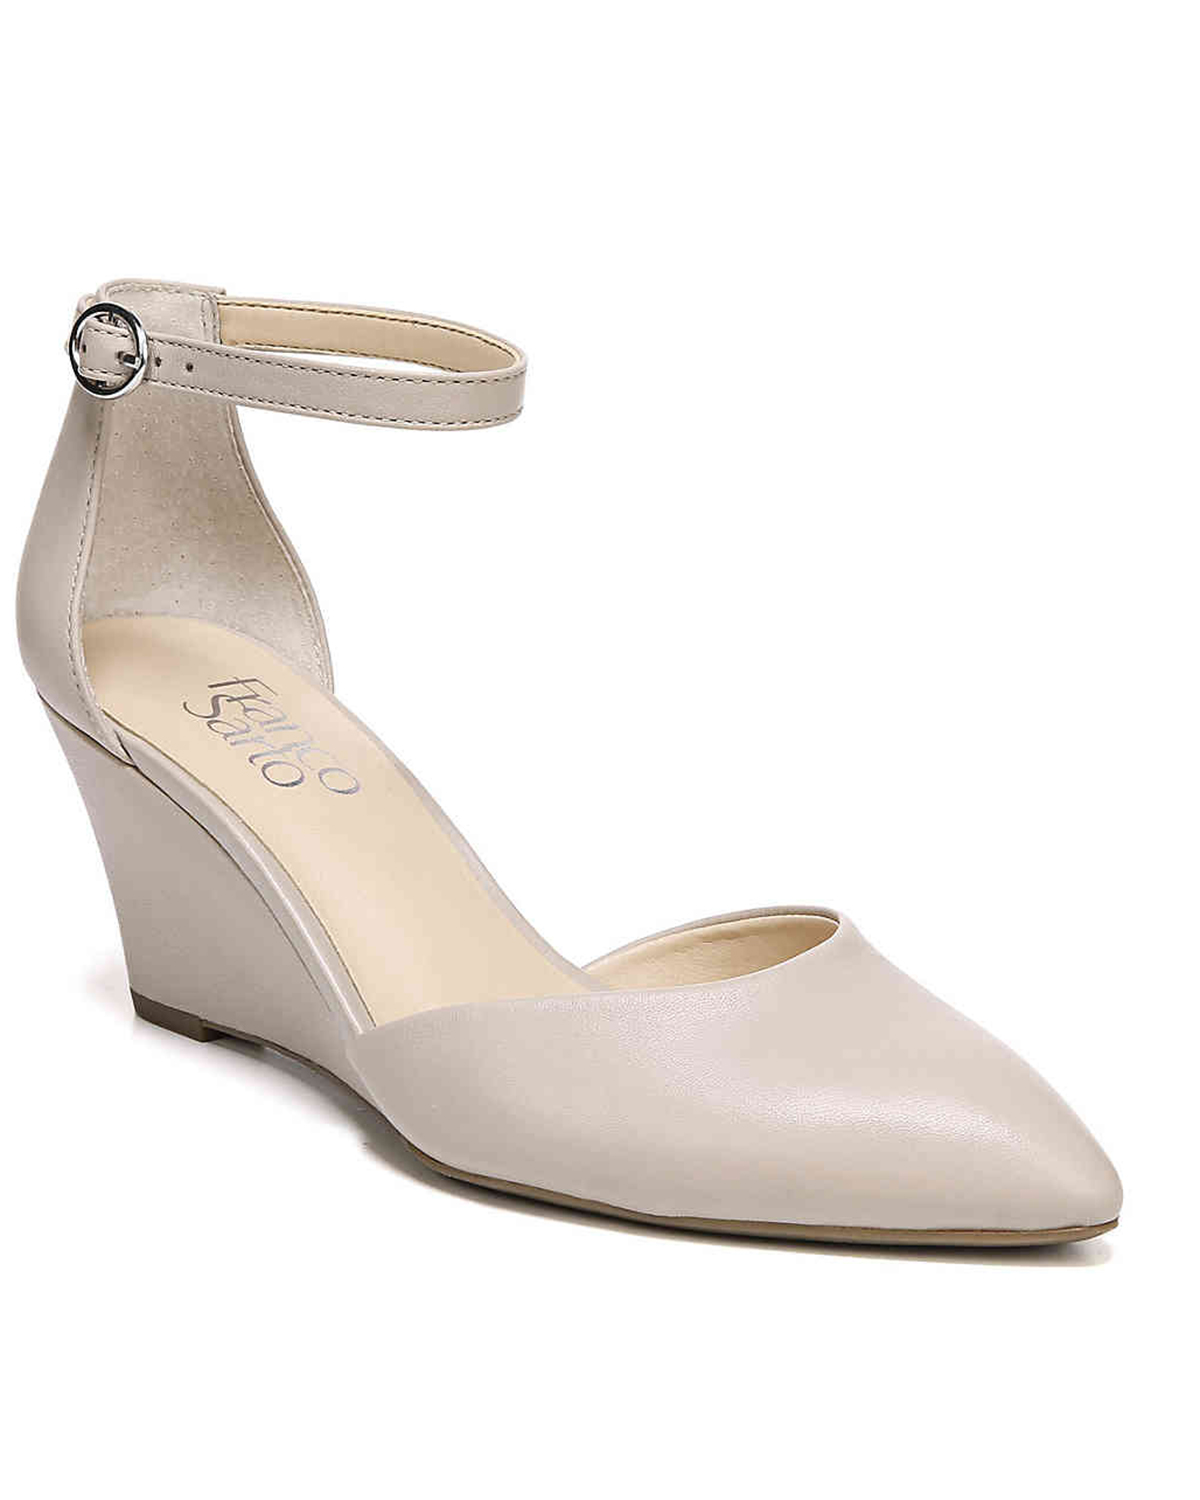 wedding wedges beige leather with pointed toe